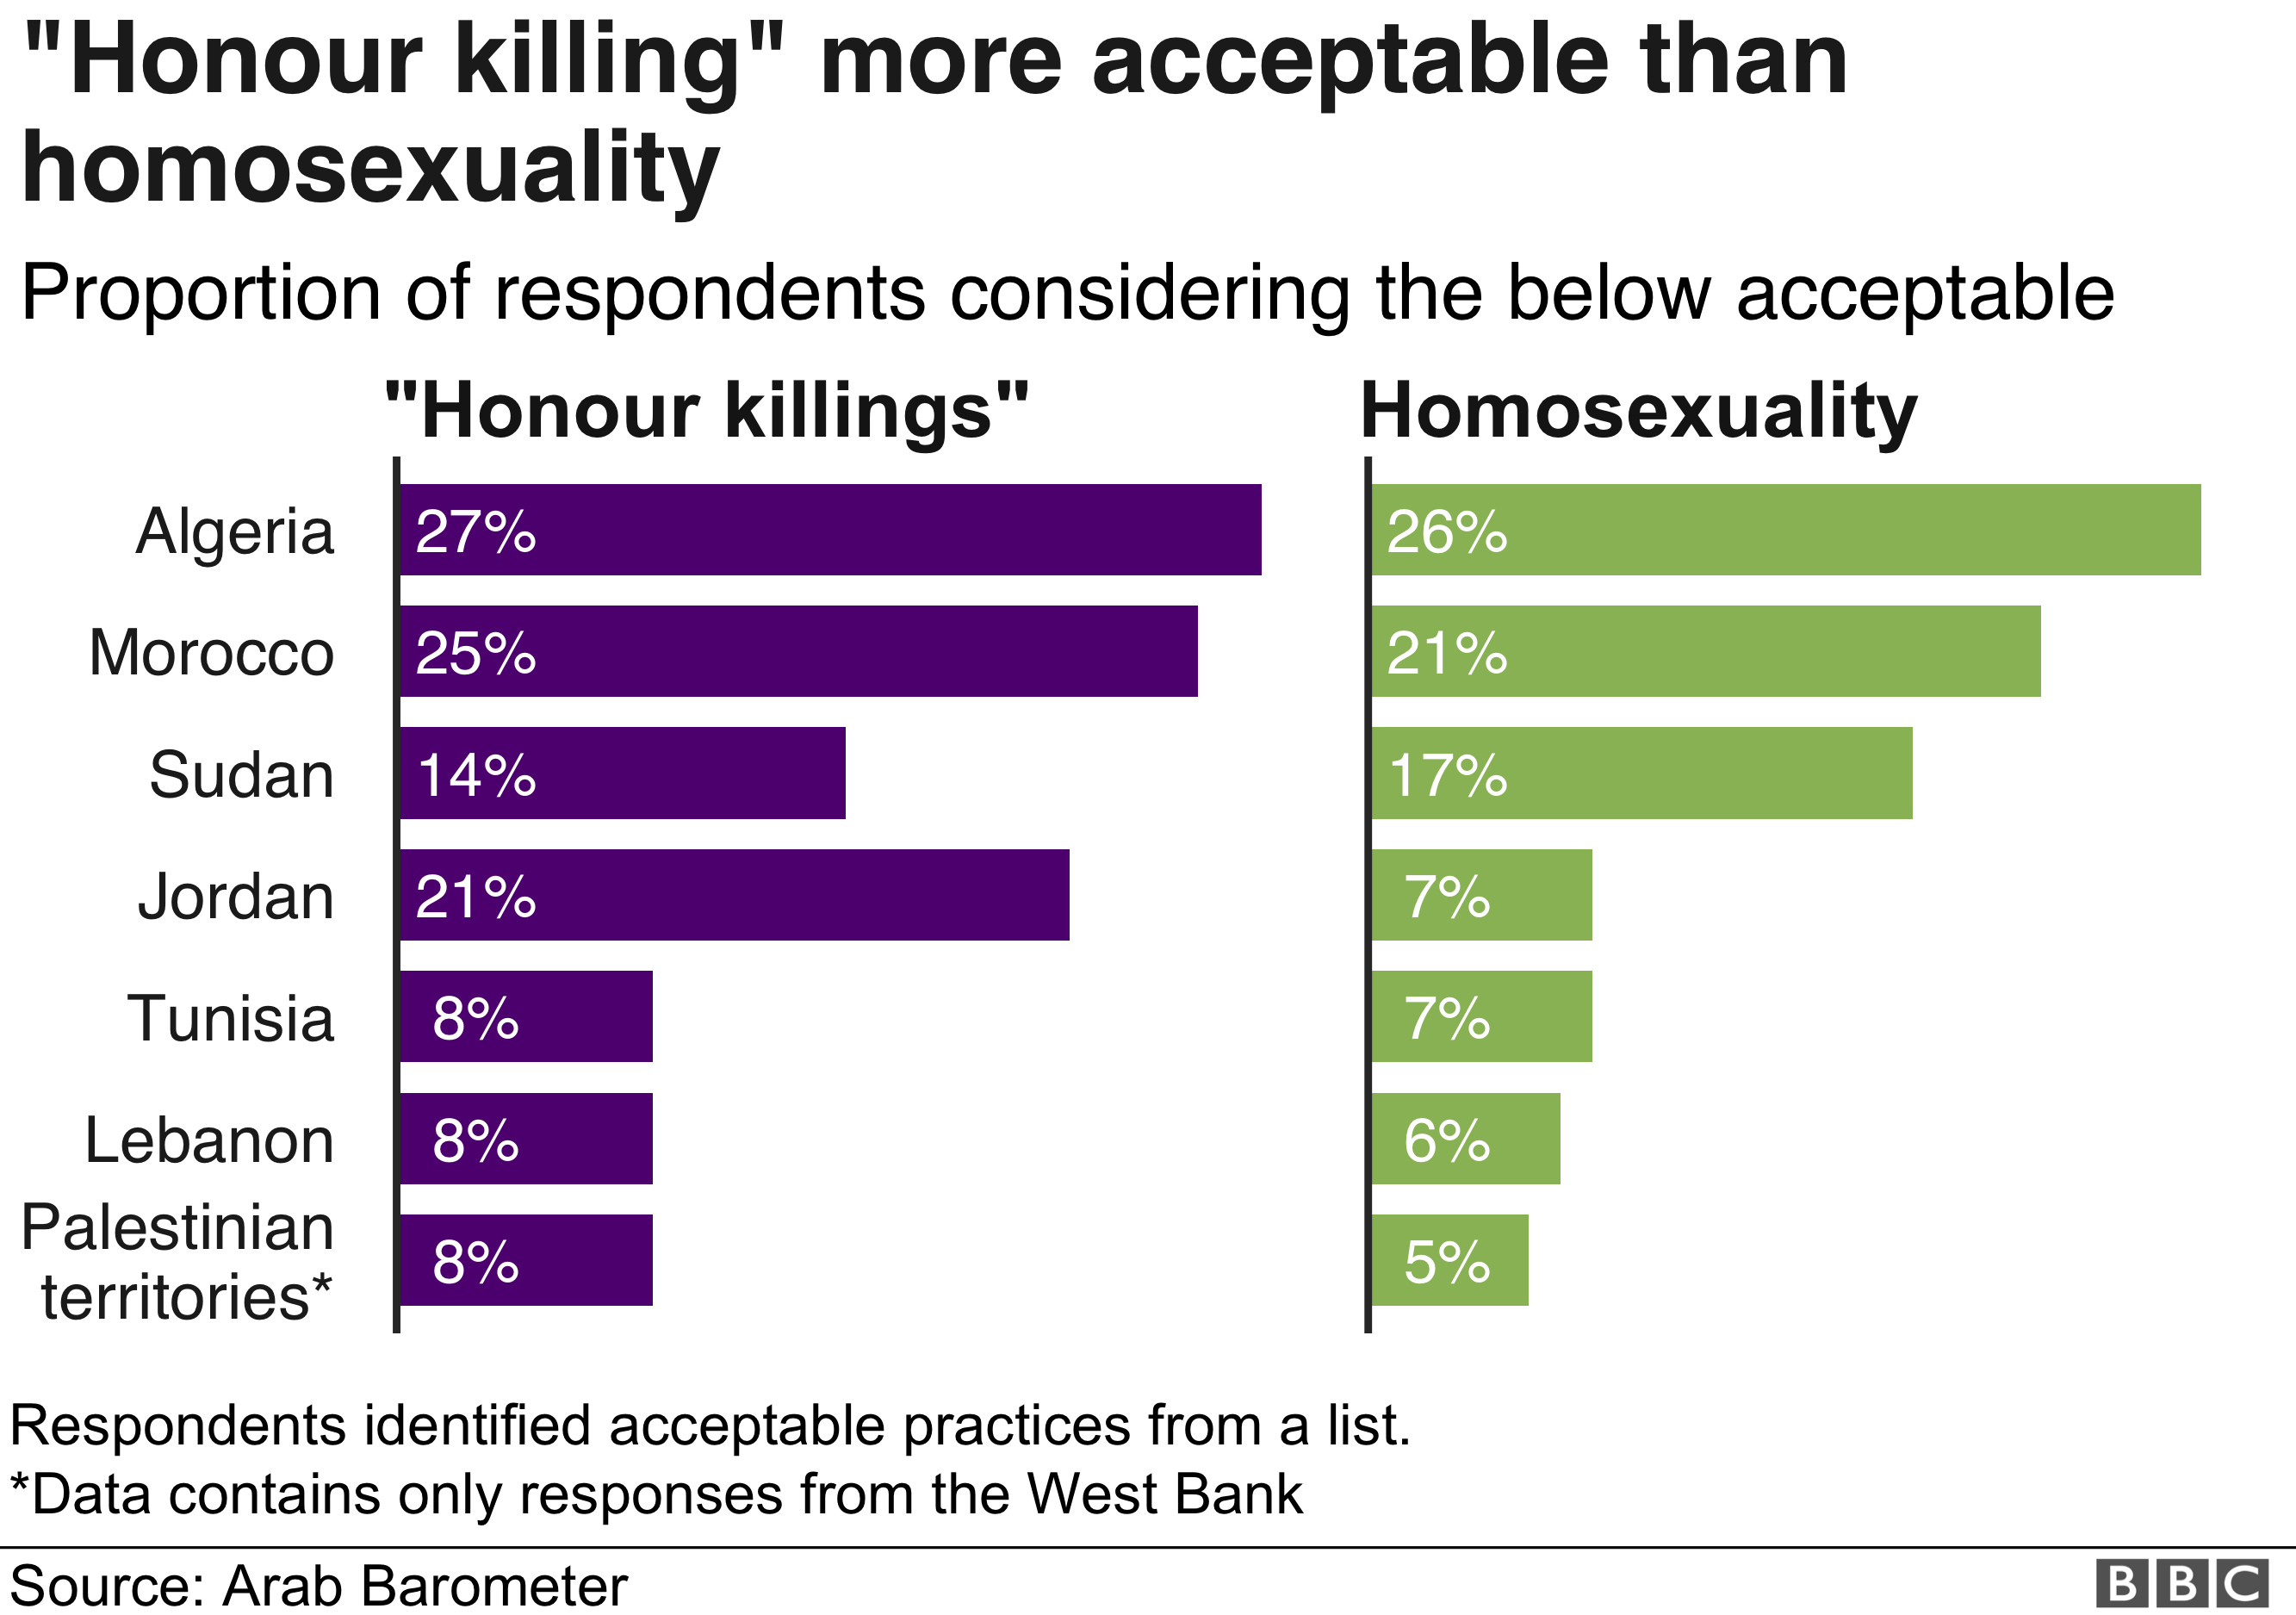 Chart showing acceptance of homosexuality is low or extremely low across the region